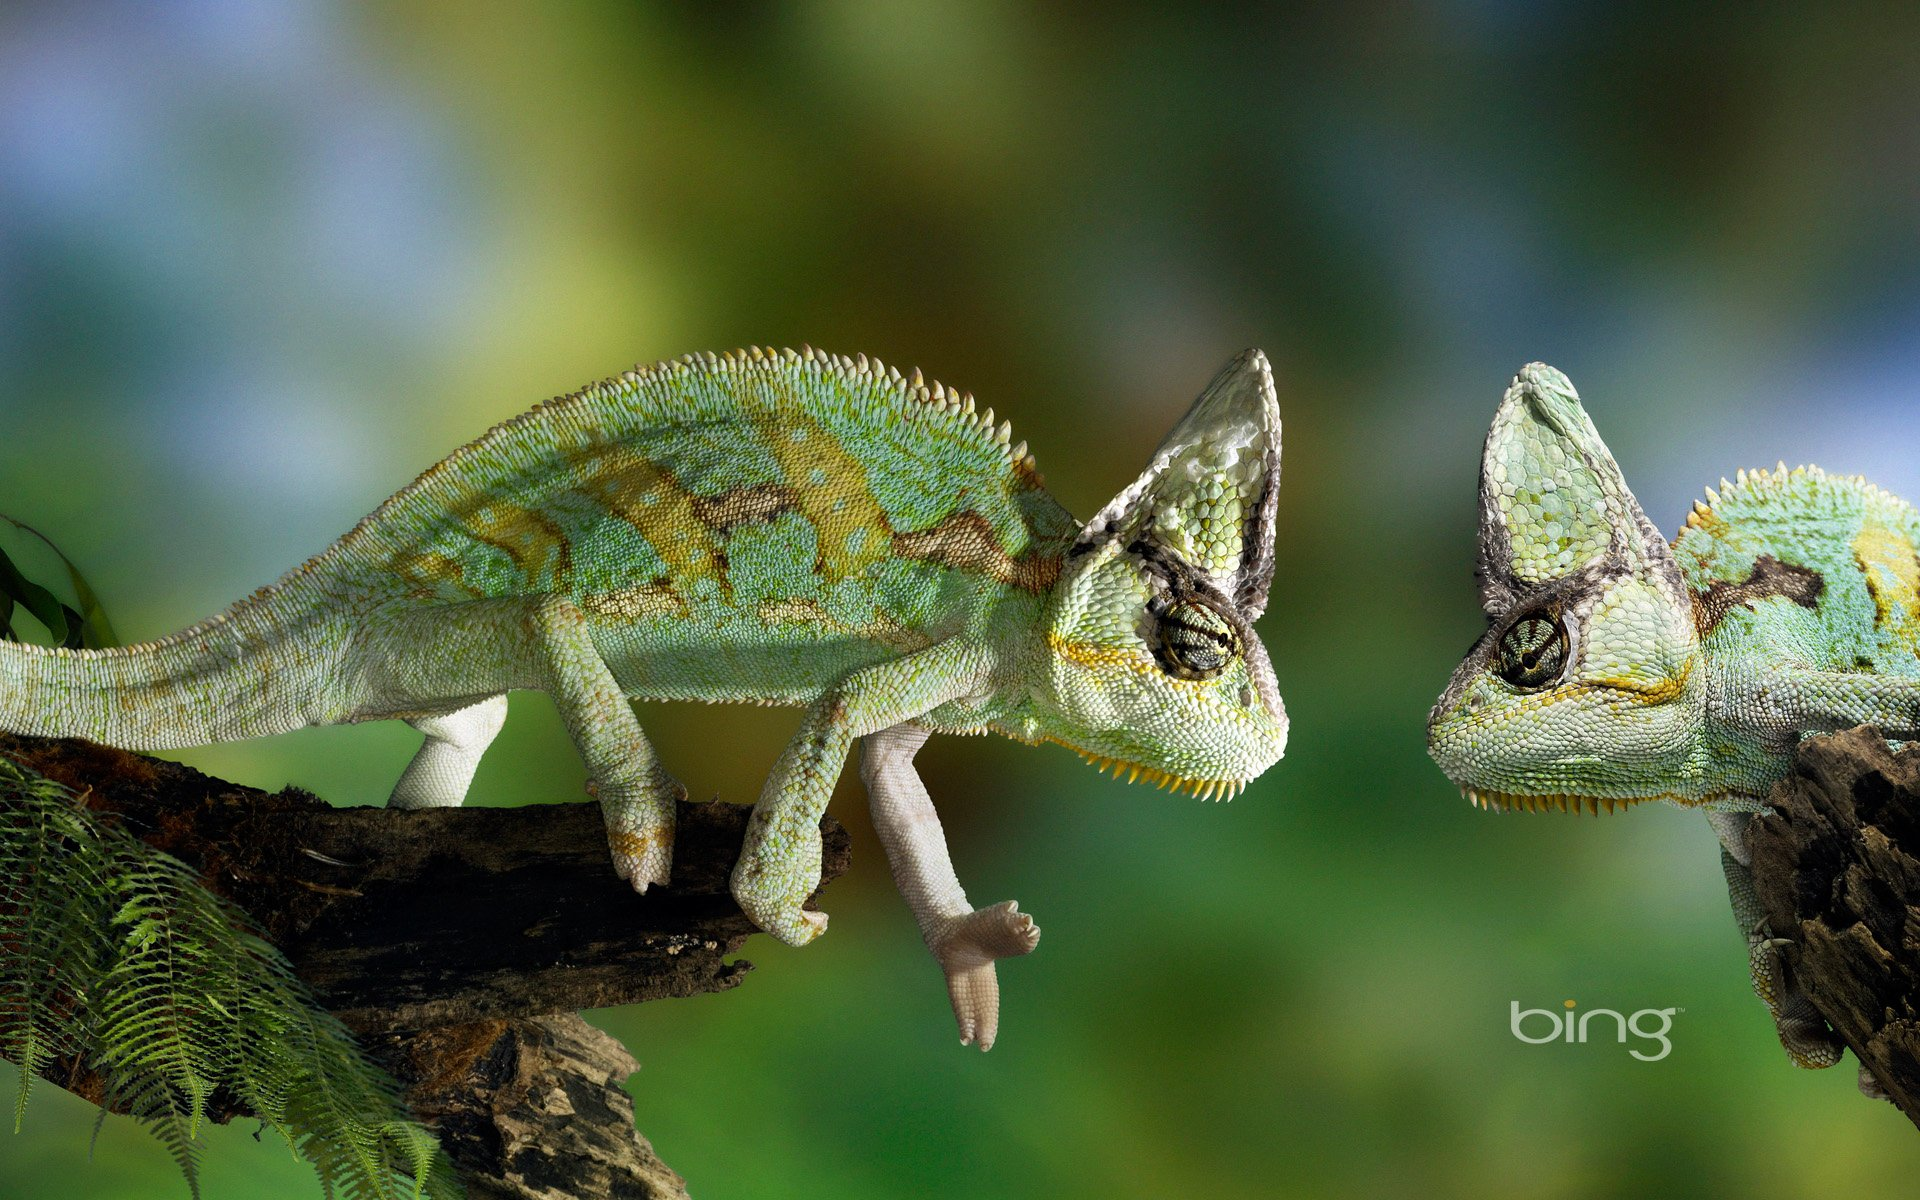 chameleon wallpaper 1920x1200 - photo #19